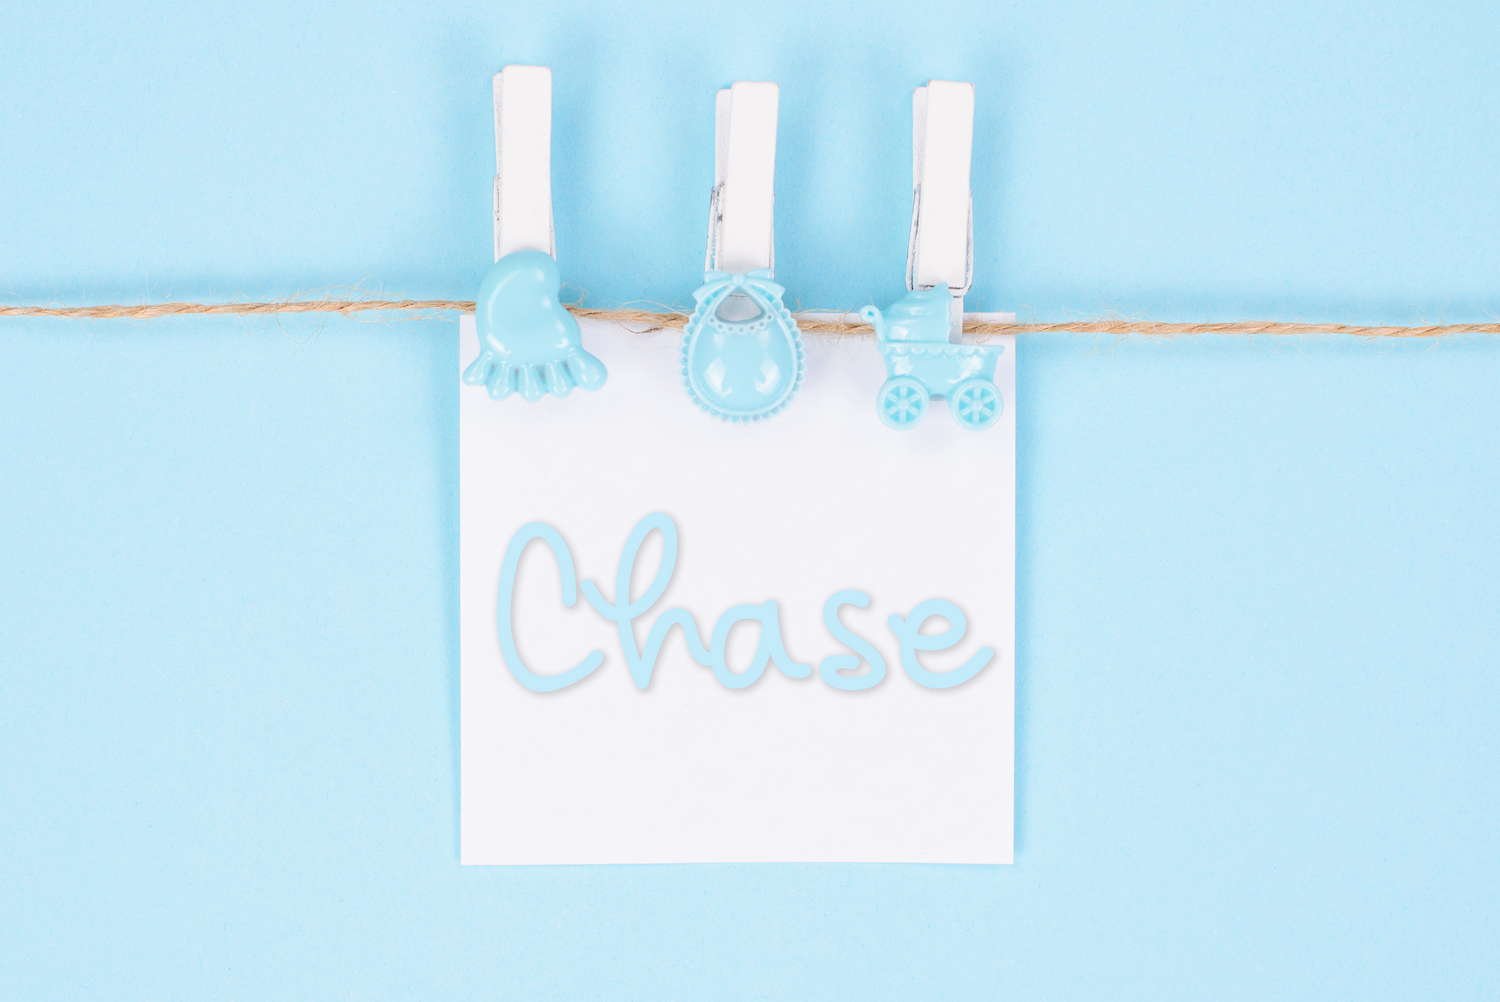 Chase Baby Name